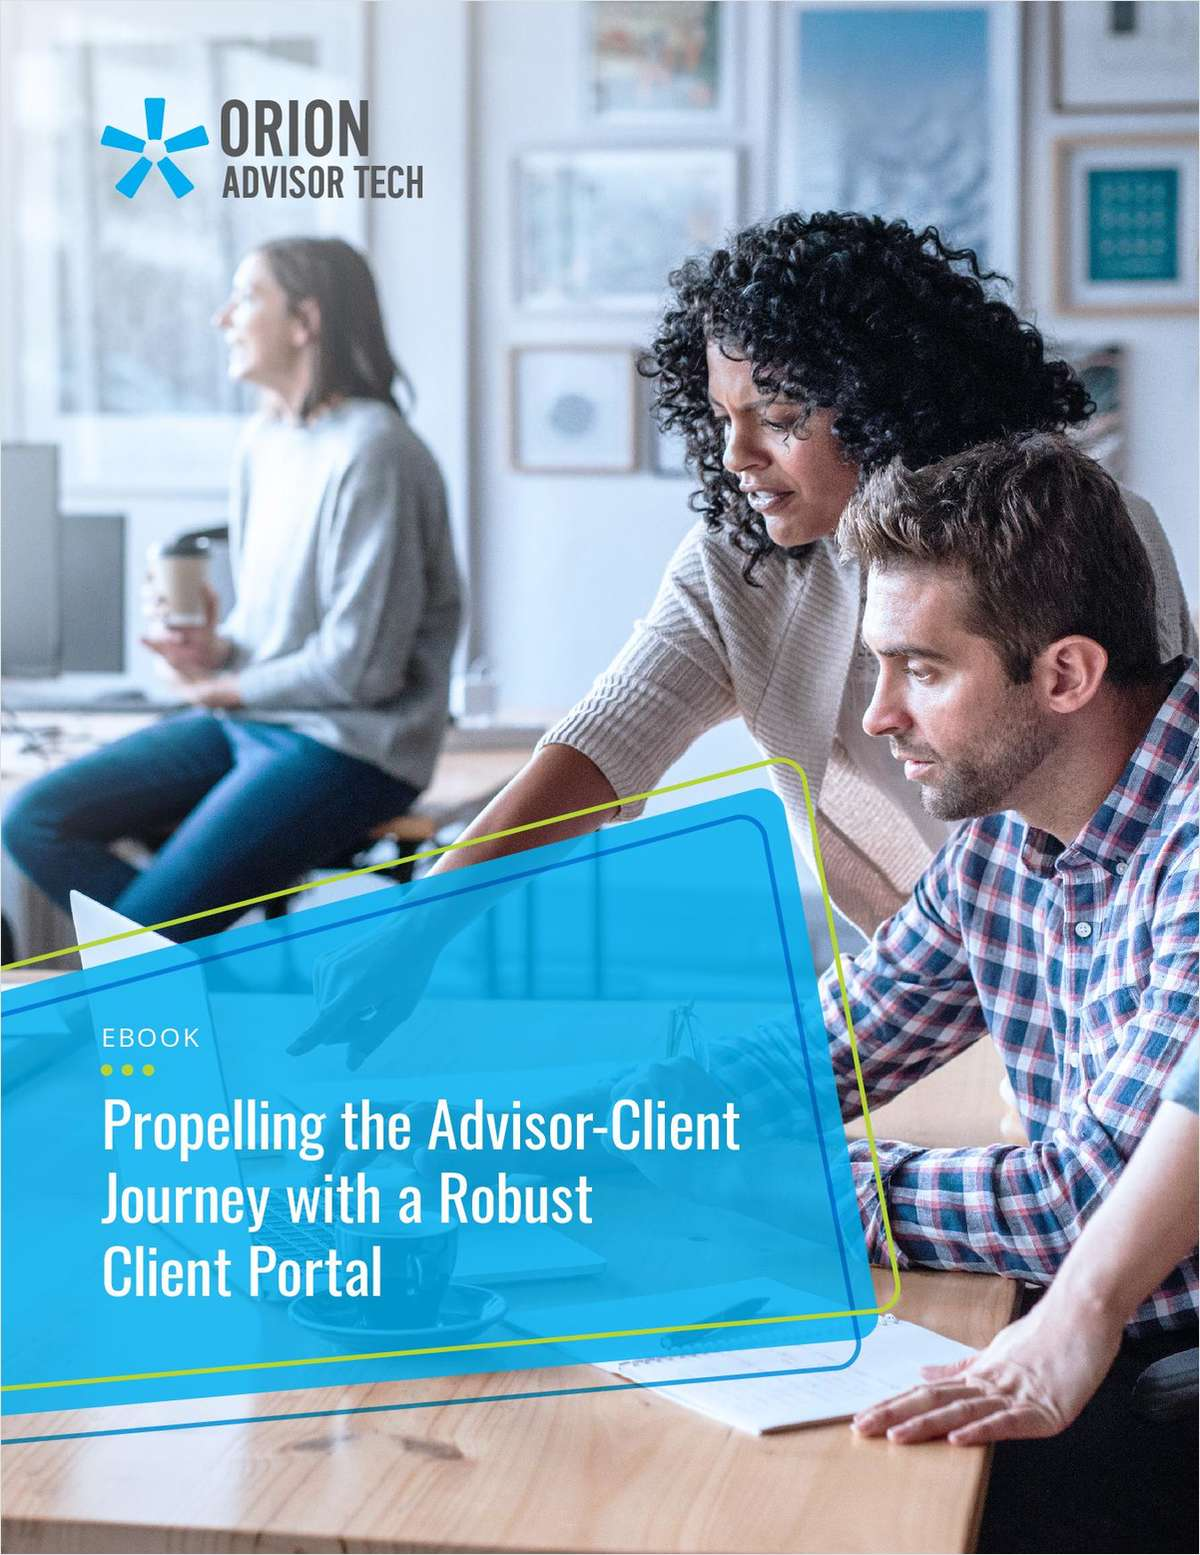 Propelling the Advisor-Client Journey with a Robust Client Portal